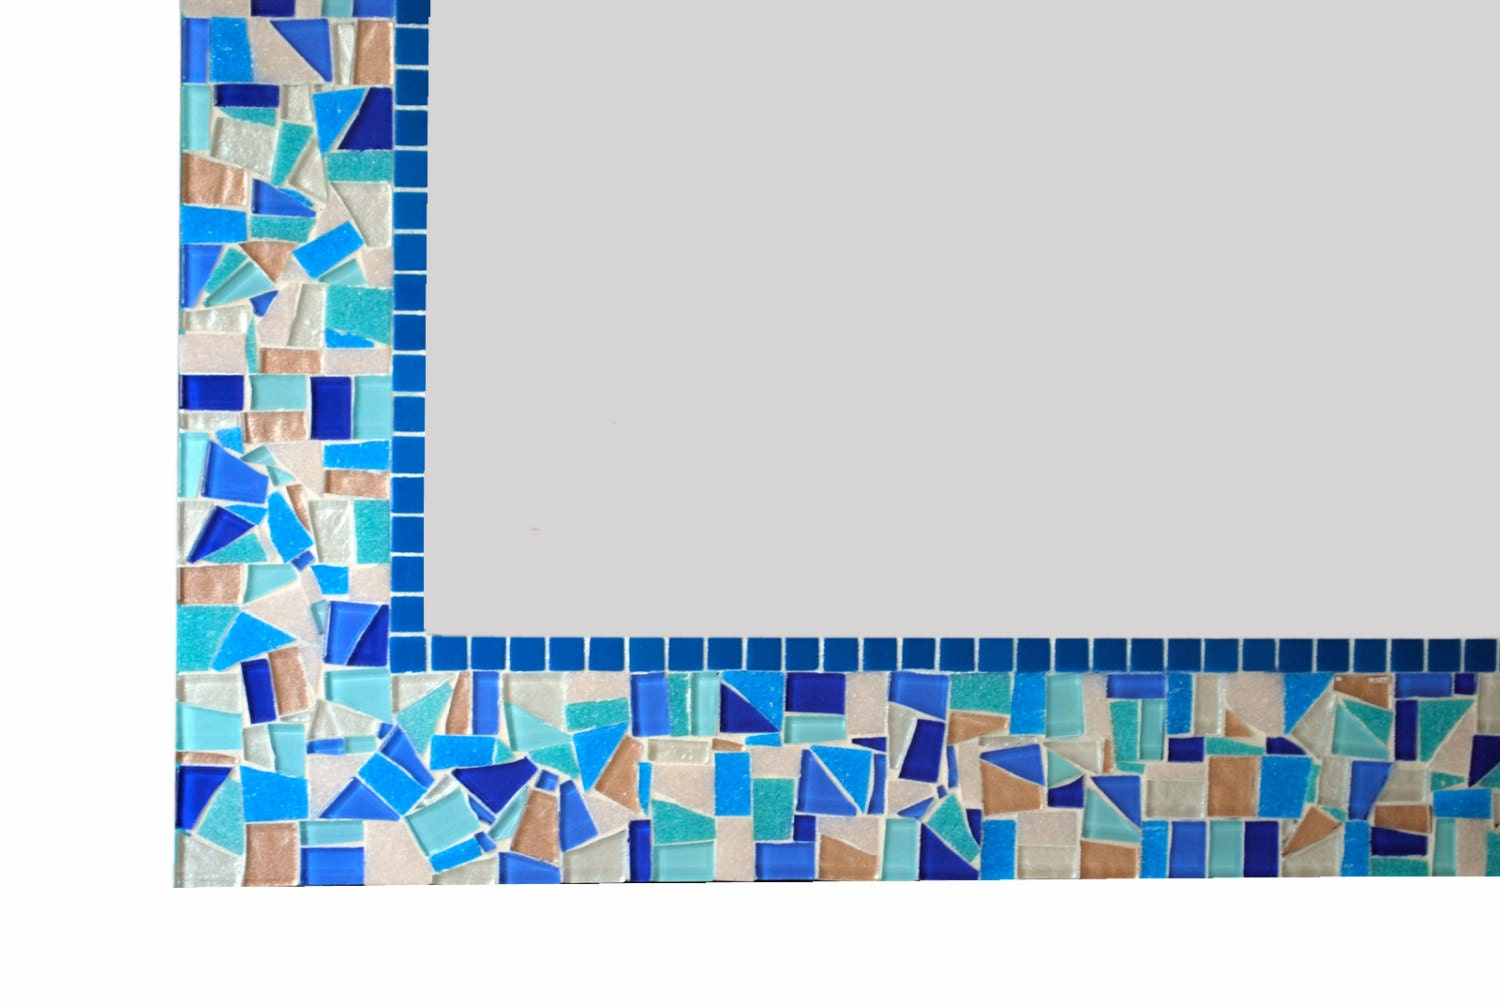 Blue mosaic mirror bathroom decor handcrafted wall art for Blue mosaic bathroom accessories